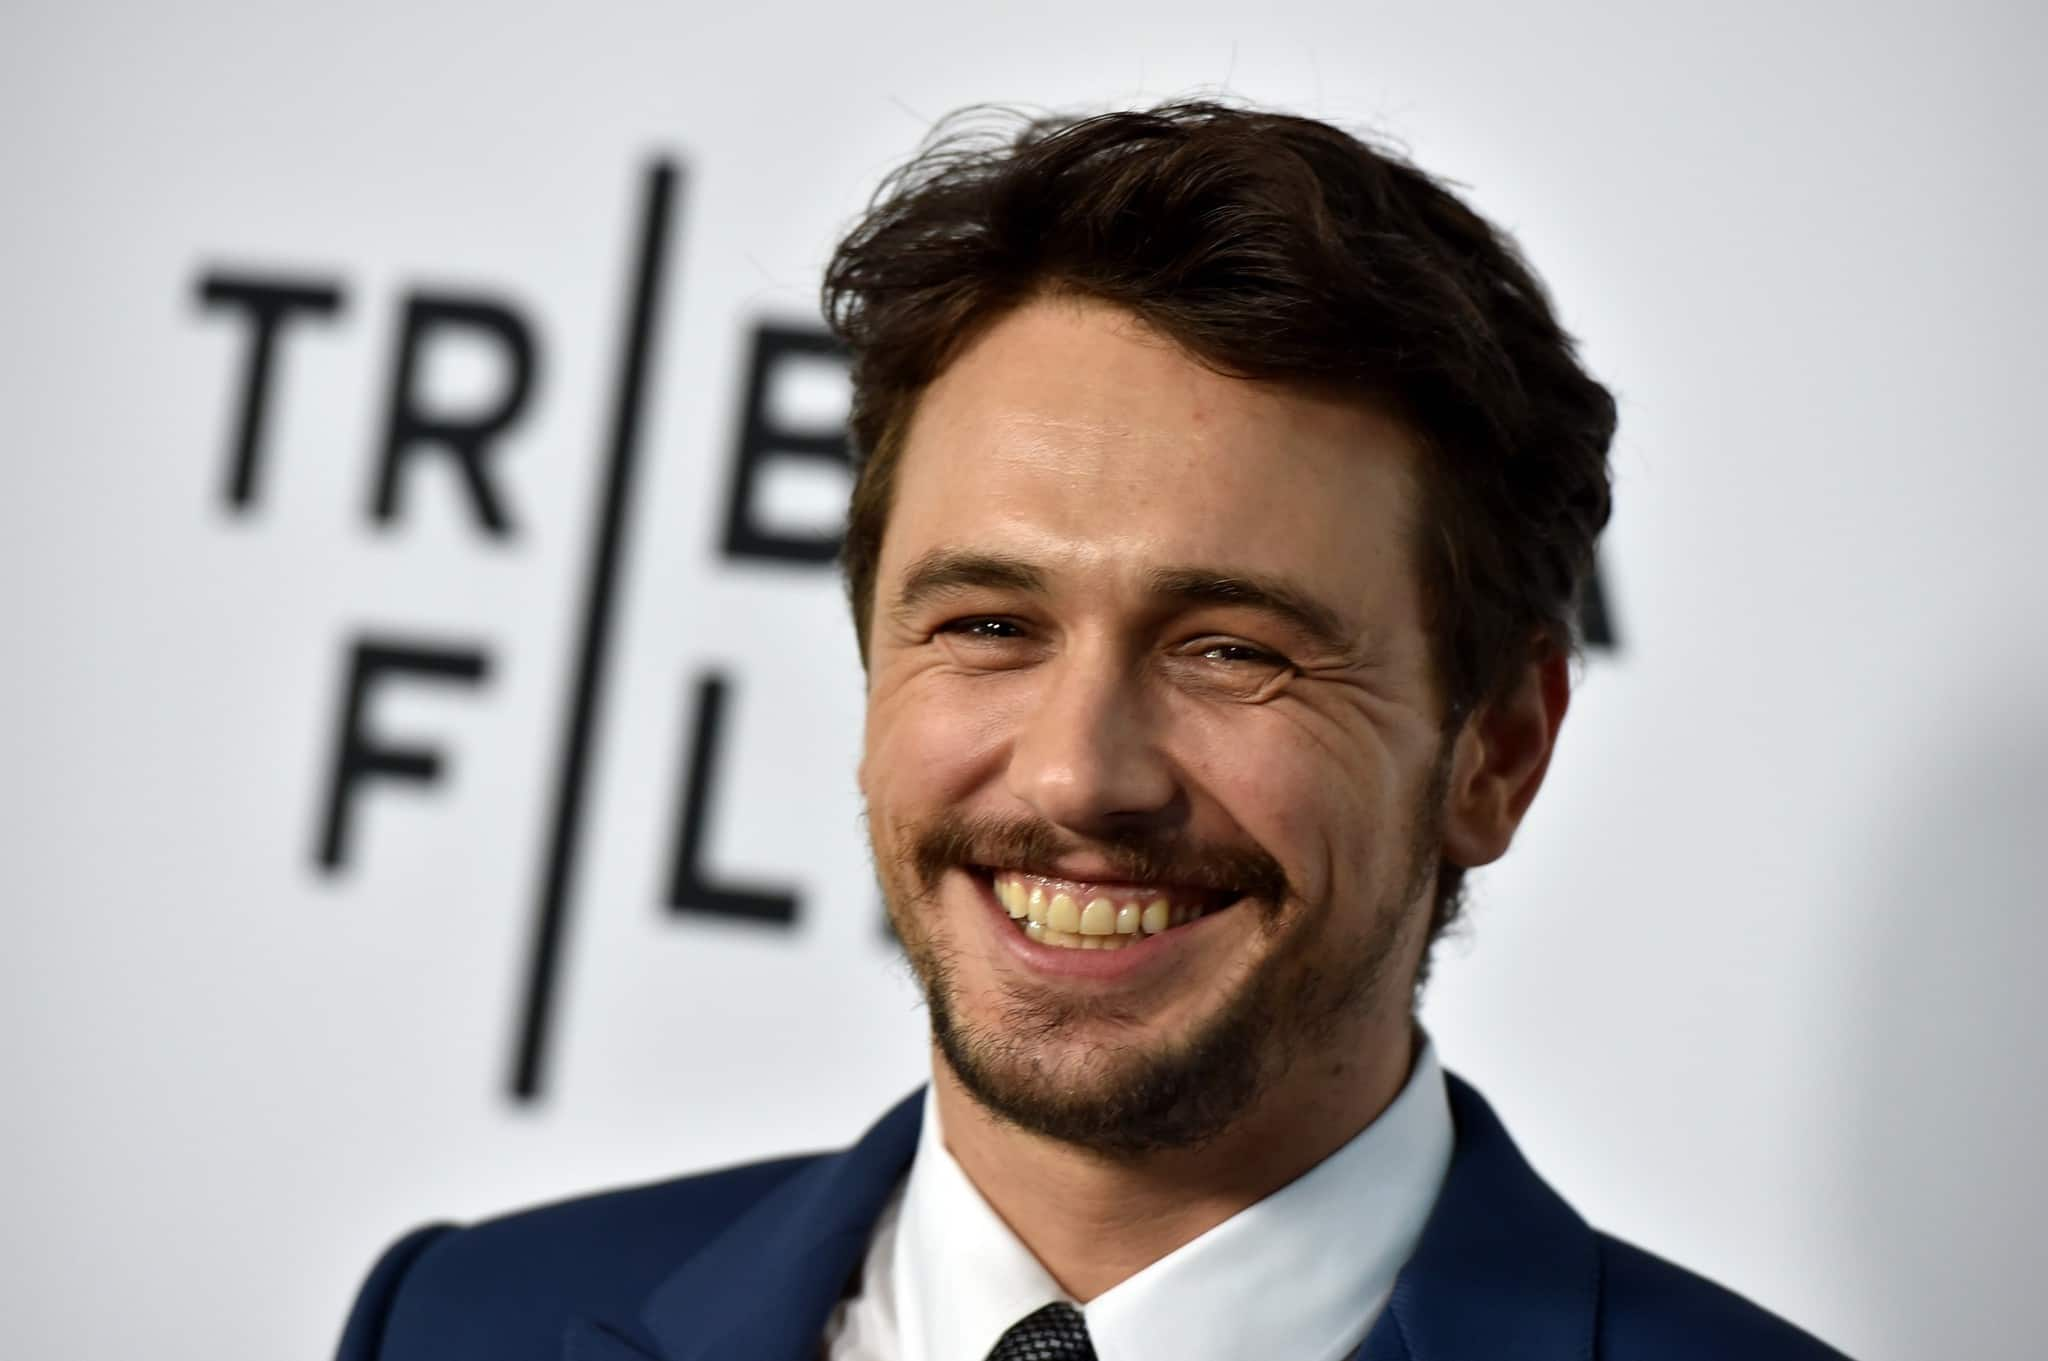 James Franco Opens Up About Troubles In His Youth